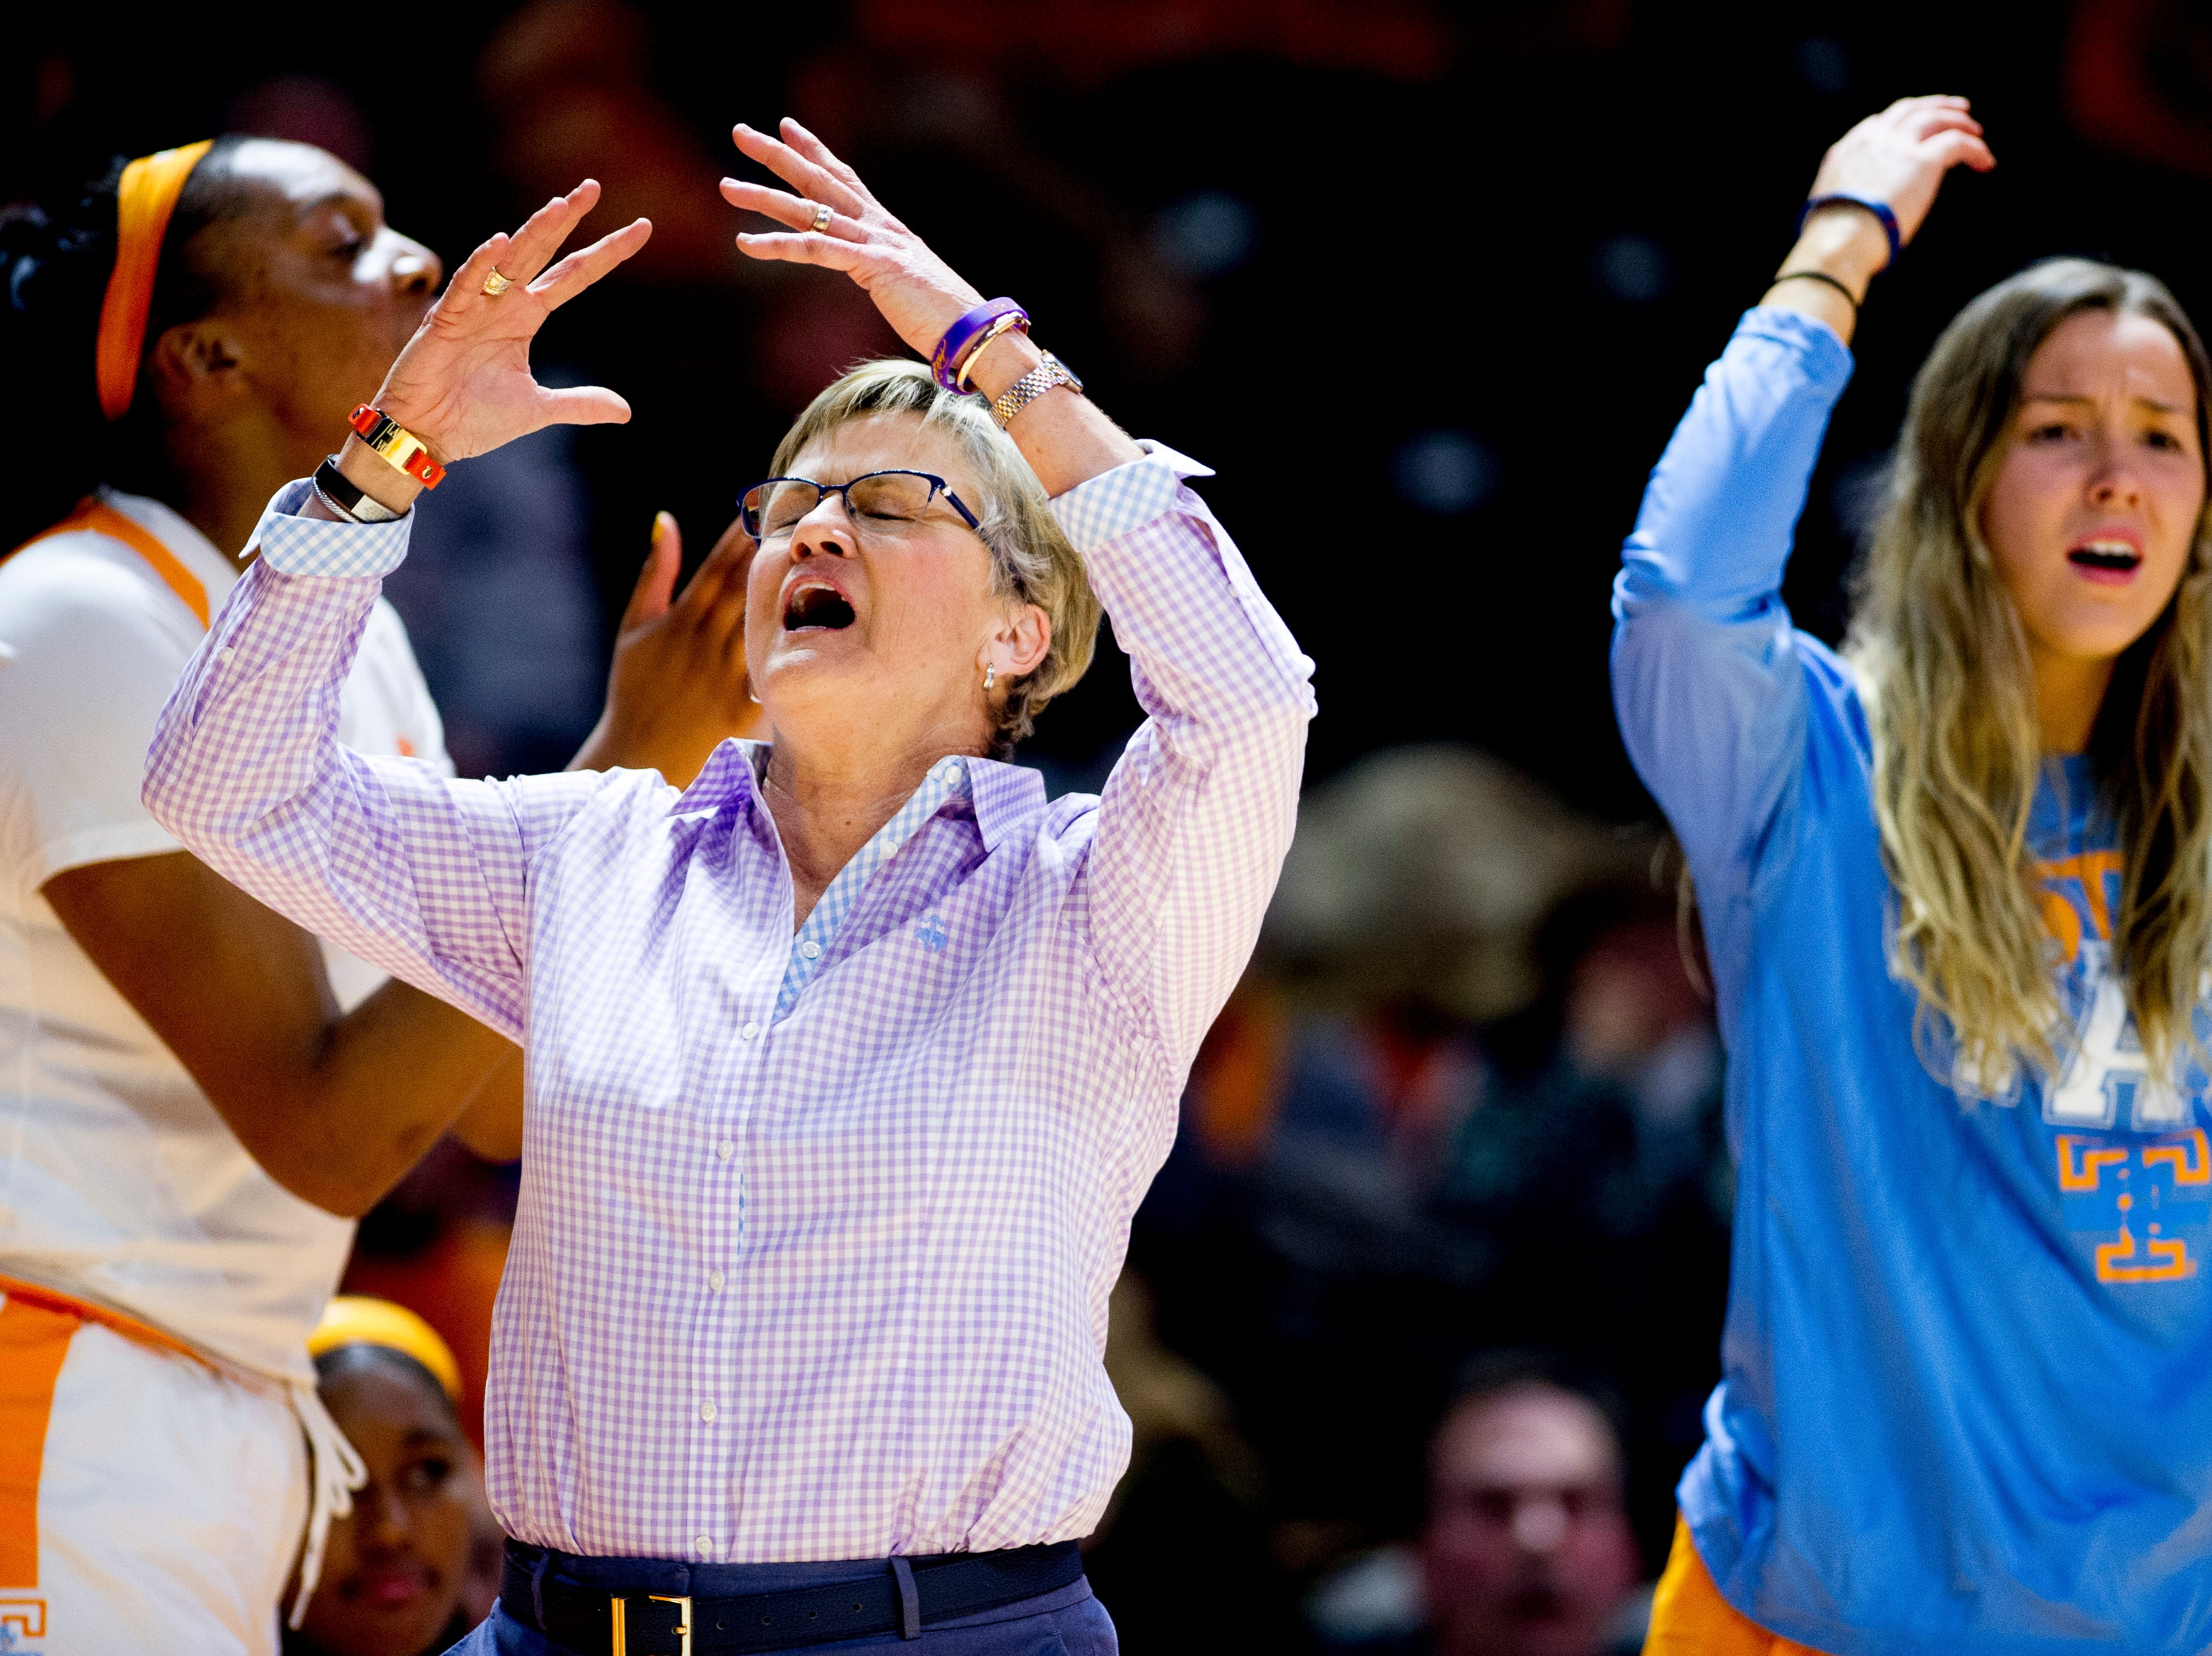 Tennessee Head Coach Holly Warlick reacts to a play during a game between Tennessee and Arkansas at Thompson-Boling Arena in Knoxville, Tennessee on Monday, January 21, 2019.